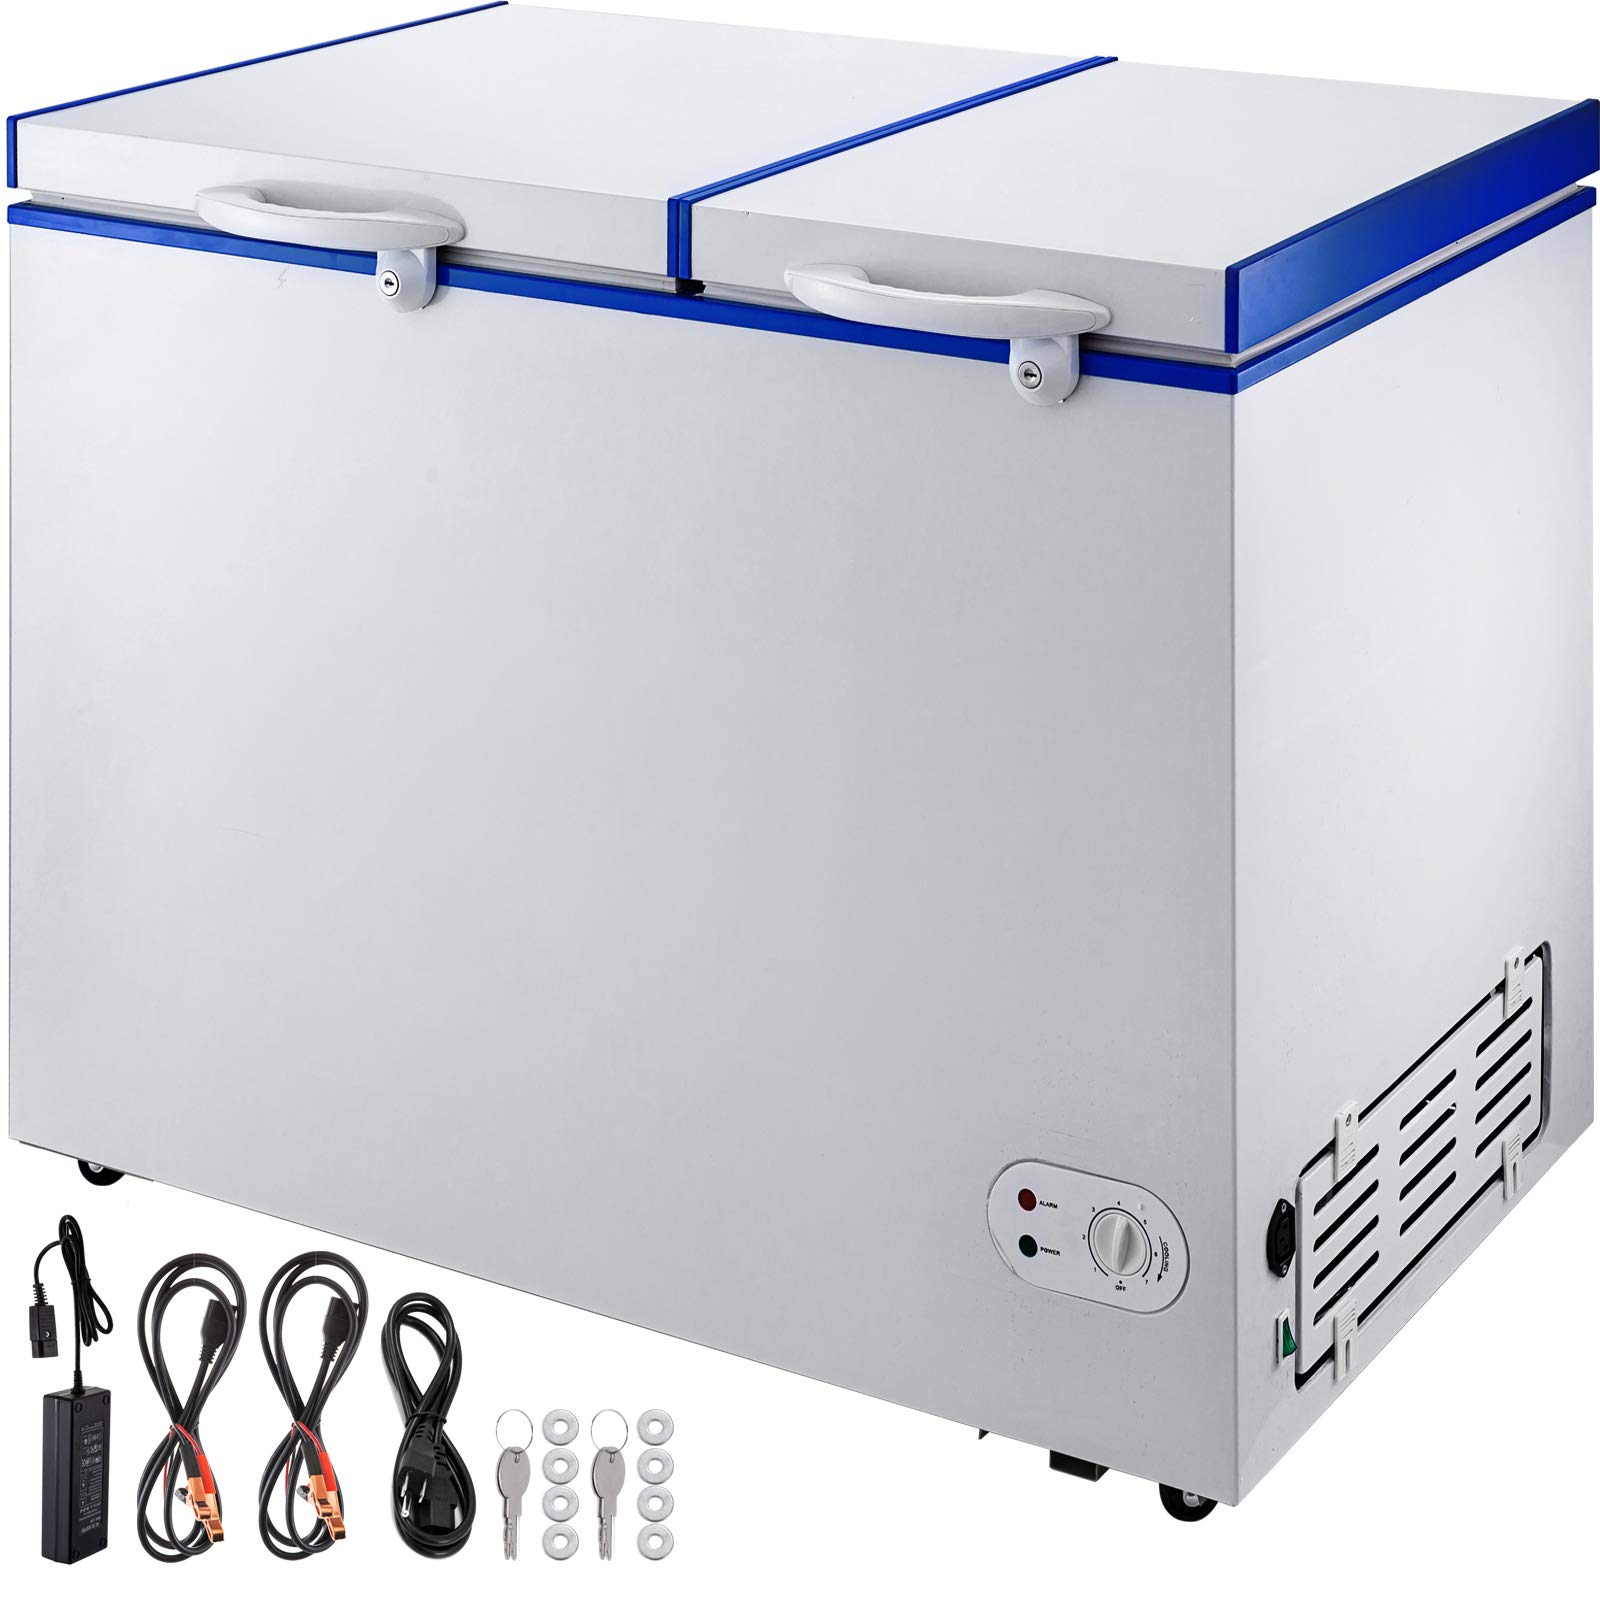 VBENLEM Chest Freezer,182 Quart Commercial RV Deep Freezer,6.1 cu.ft. Compact Vehicle Electric Cooler Fridge,12V/24V DC With Lock for Car Home Camping Truck Party,-0.4℉-32℉ Suit for Solar Power